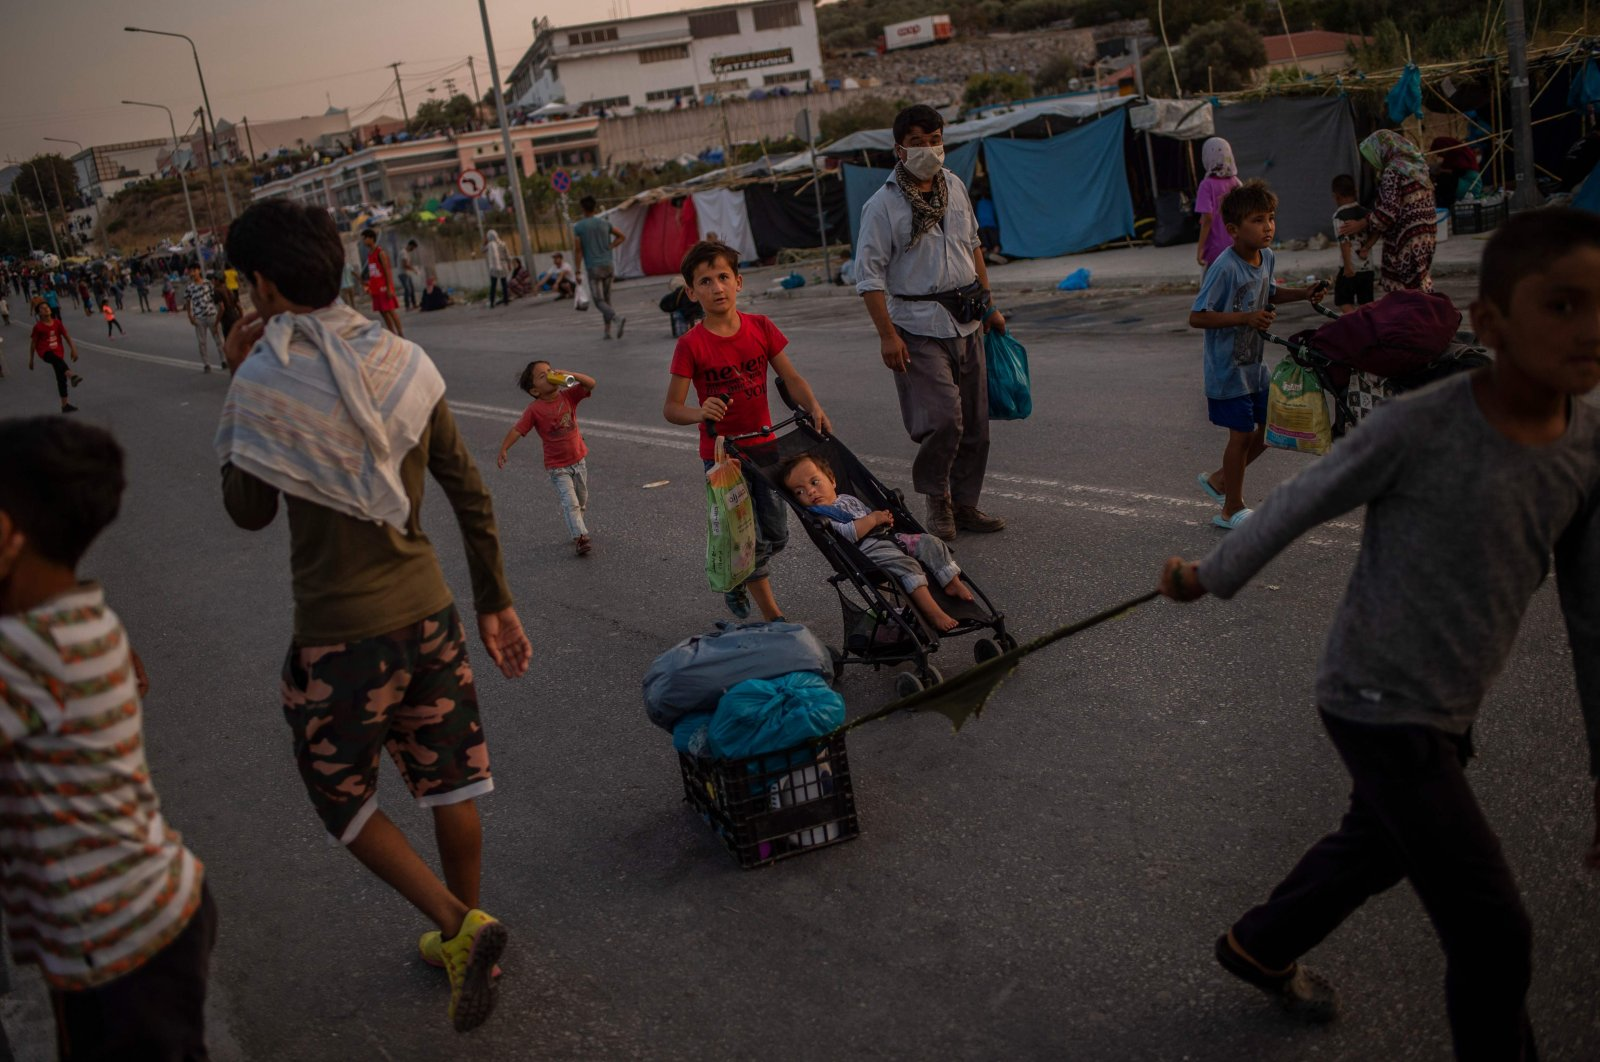 A migrant youngster drags a box carrying his belongings as he walks along a road near the Kara Tepe camp on the Greek island of Lesbos on September 15, 2020. (AFP Photo)